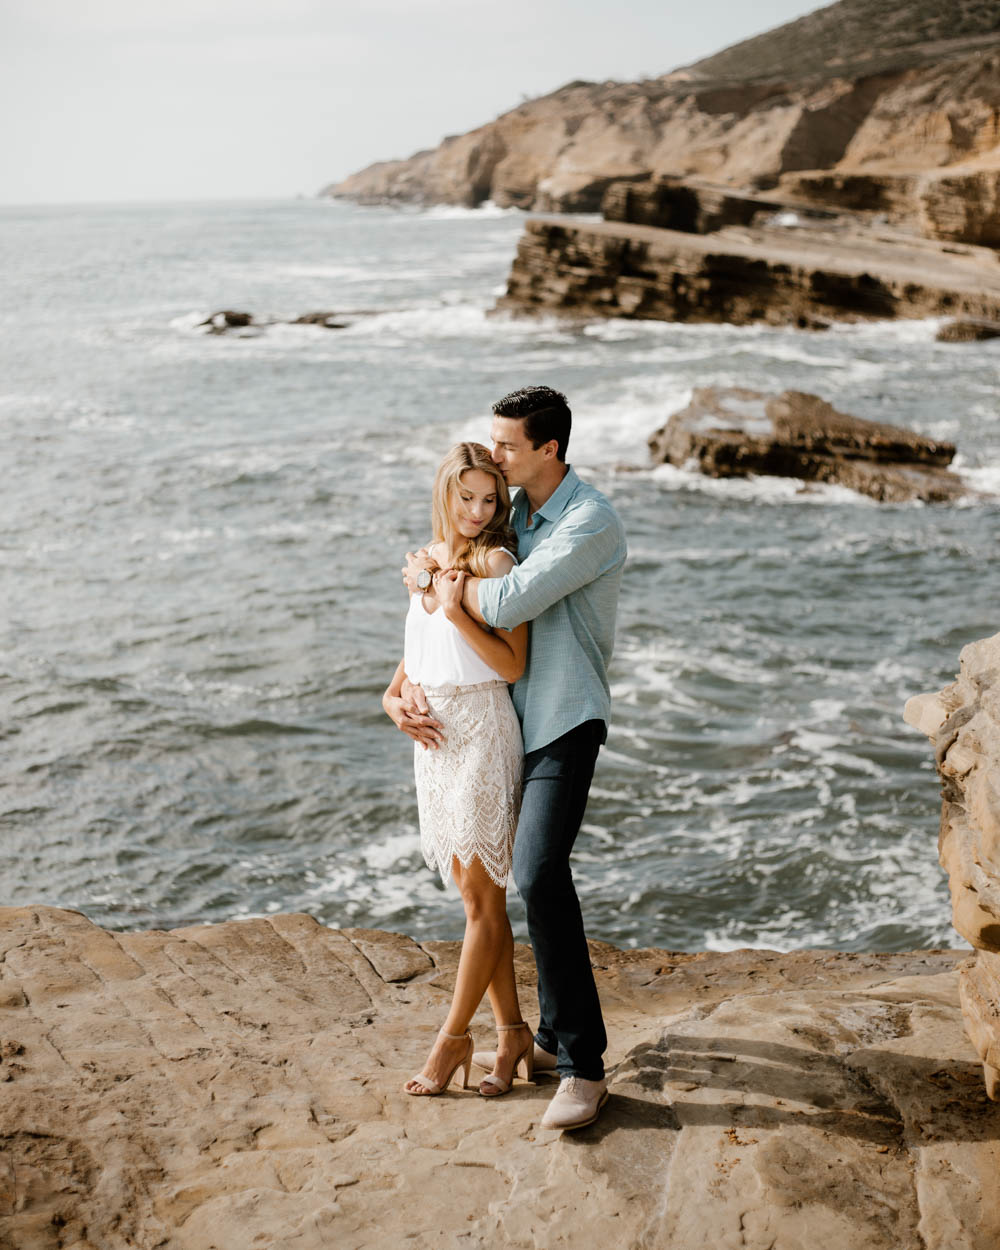 California top 33 epic engagement photography locations cabrillo national monument